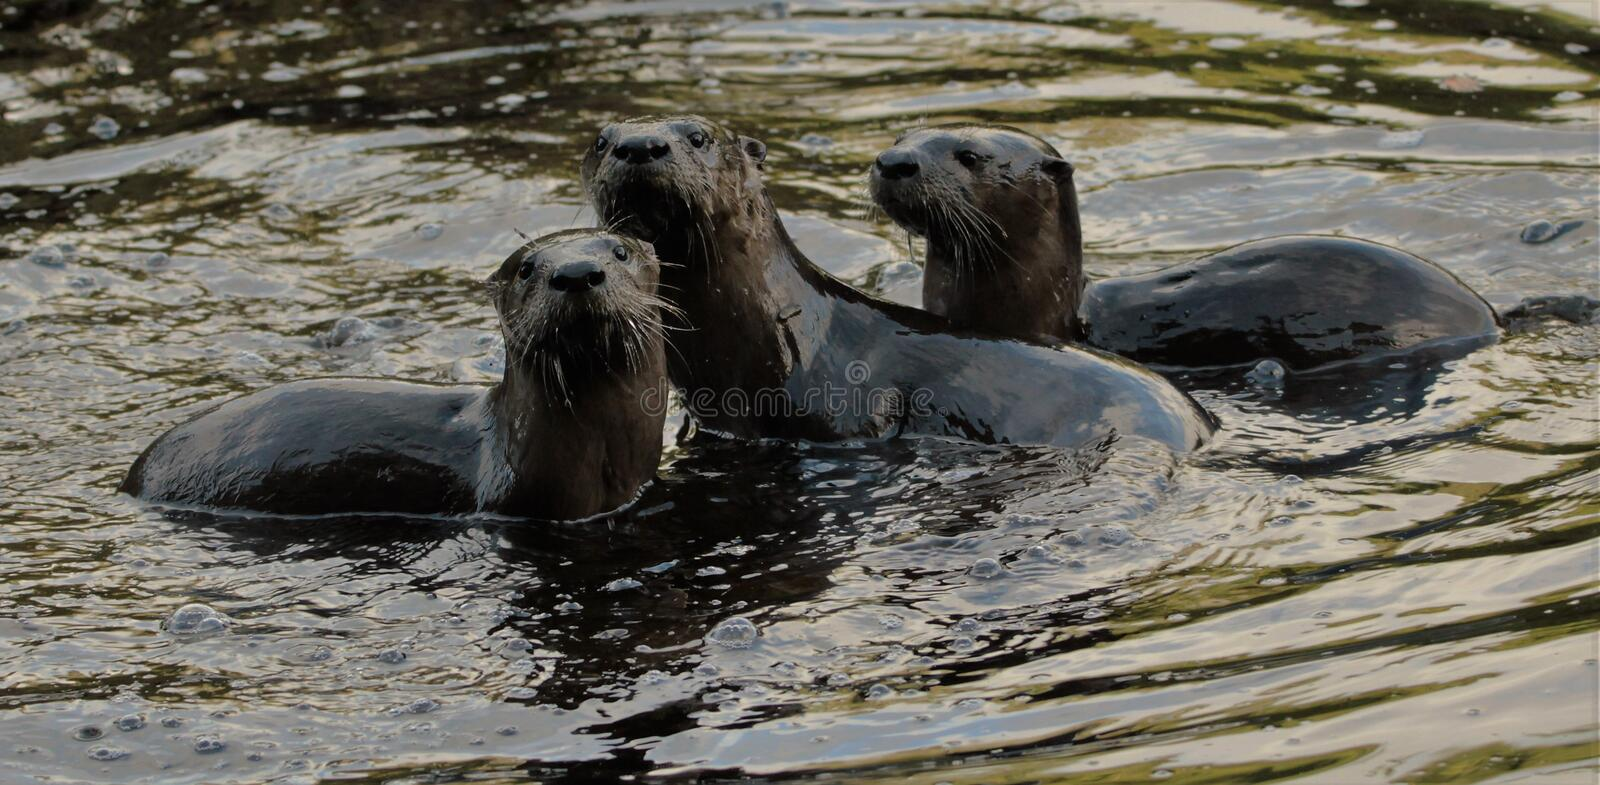 ALGONQUIN PARK OTTER TRIO royalty free stock photos